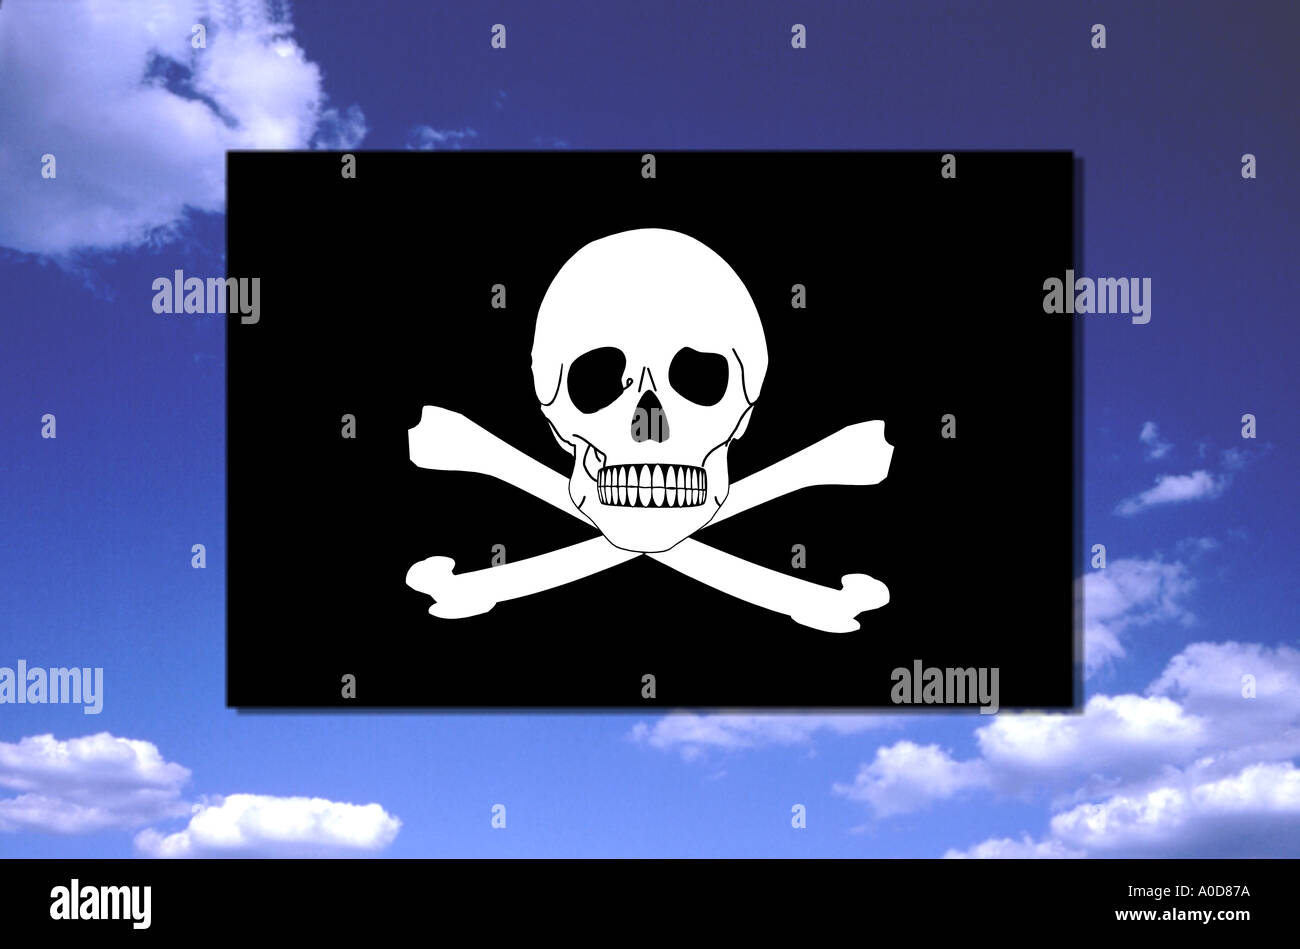 pirate flag piracy skull and crossbones death s head - Stock Image